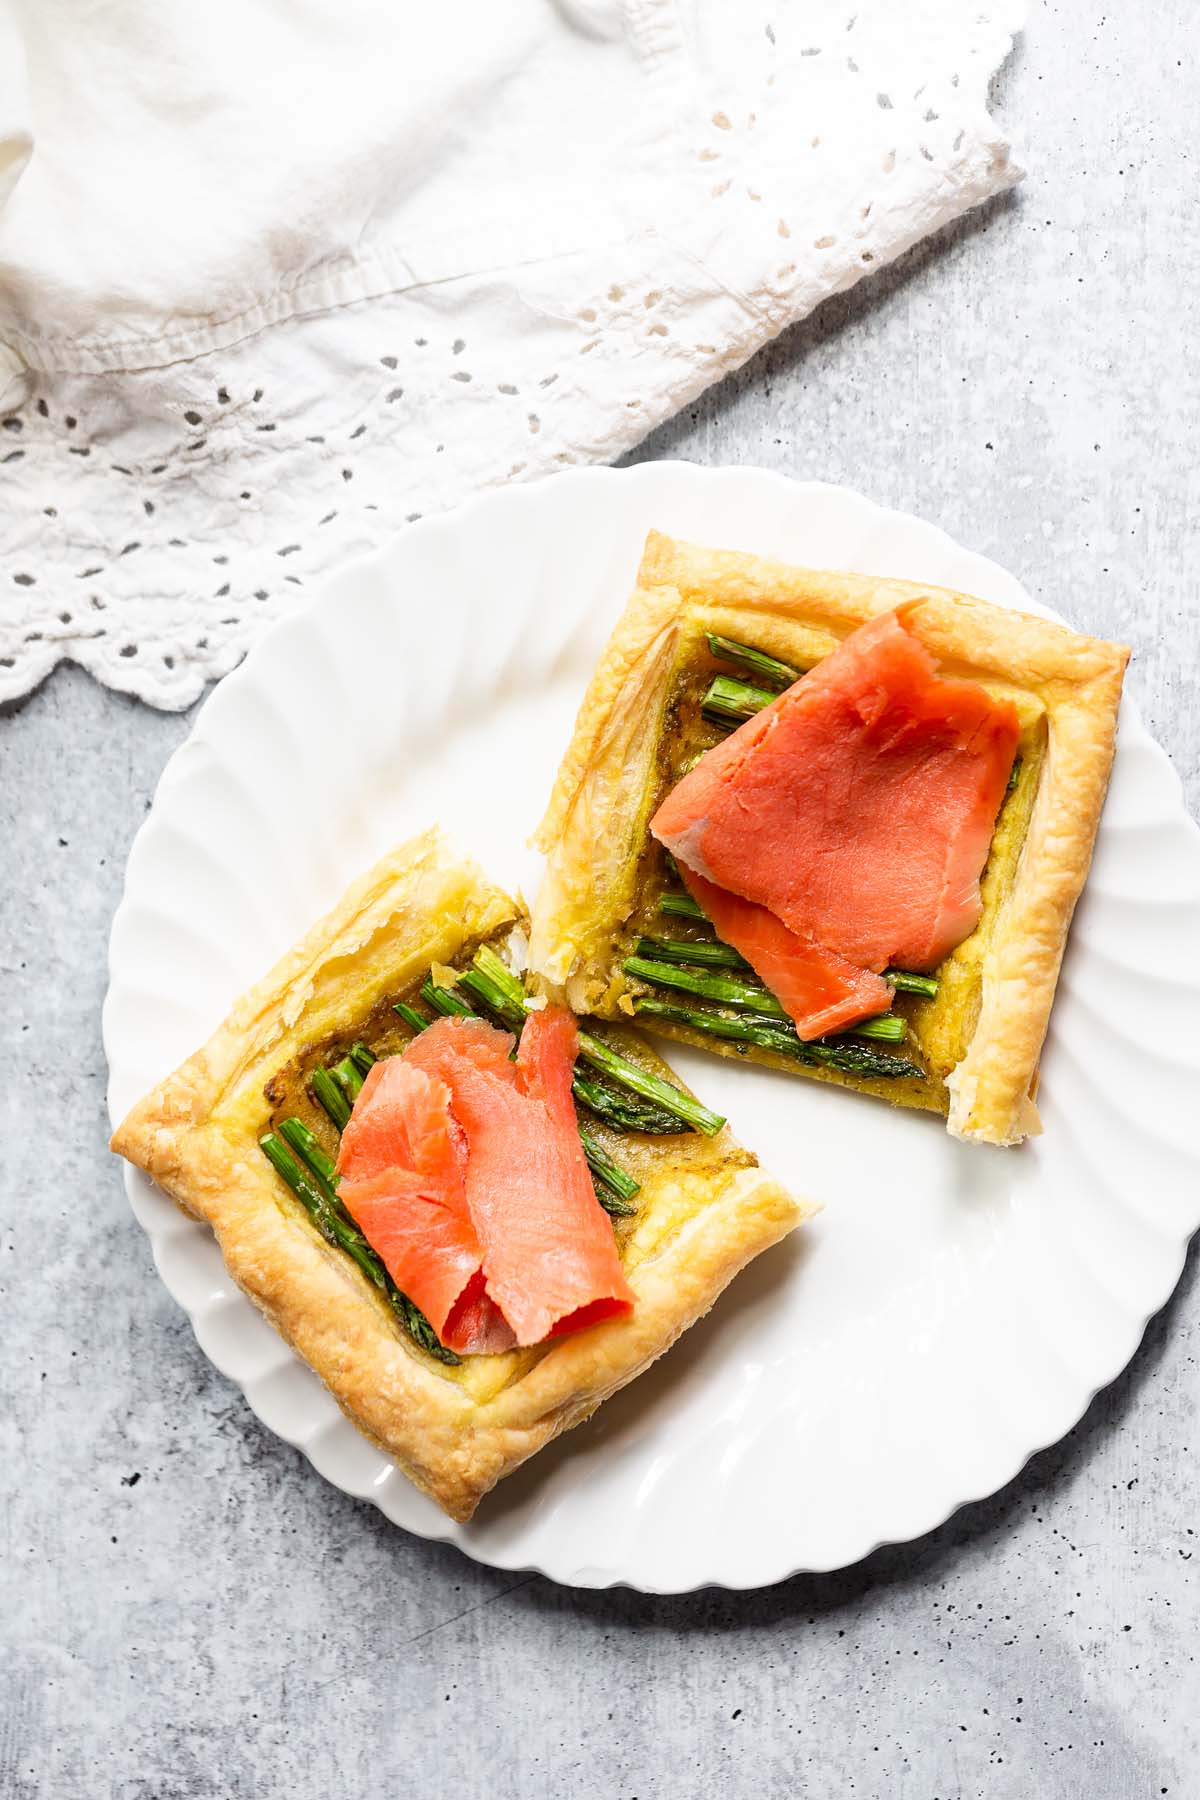 asparagus and smoked salmon tart made with puff pastry